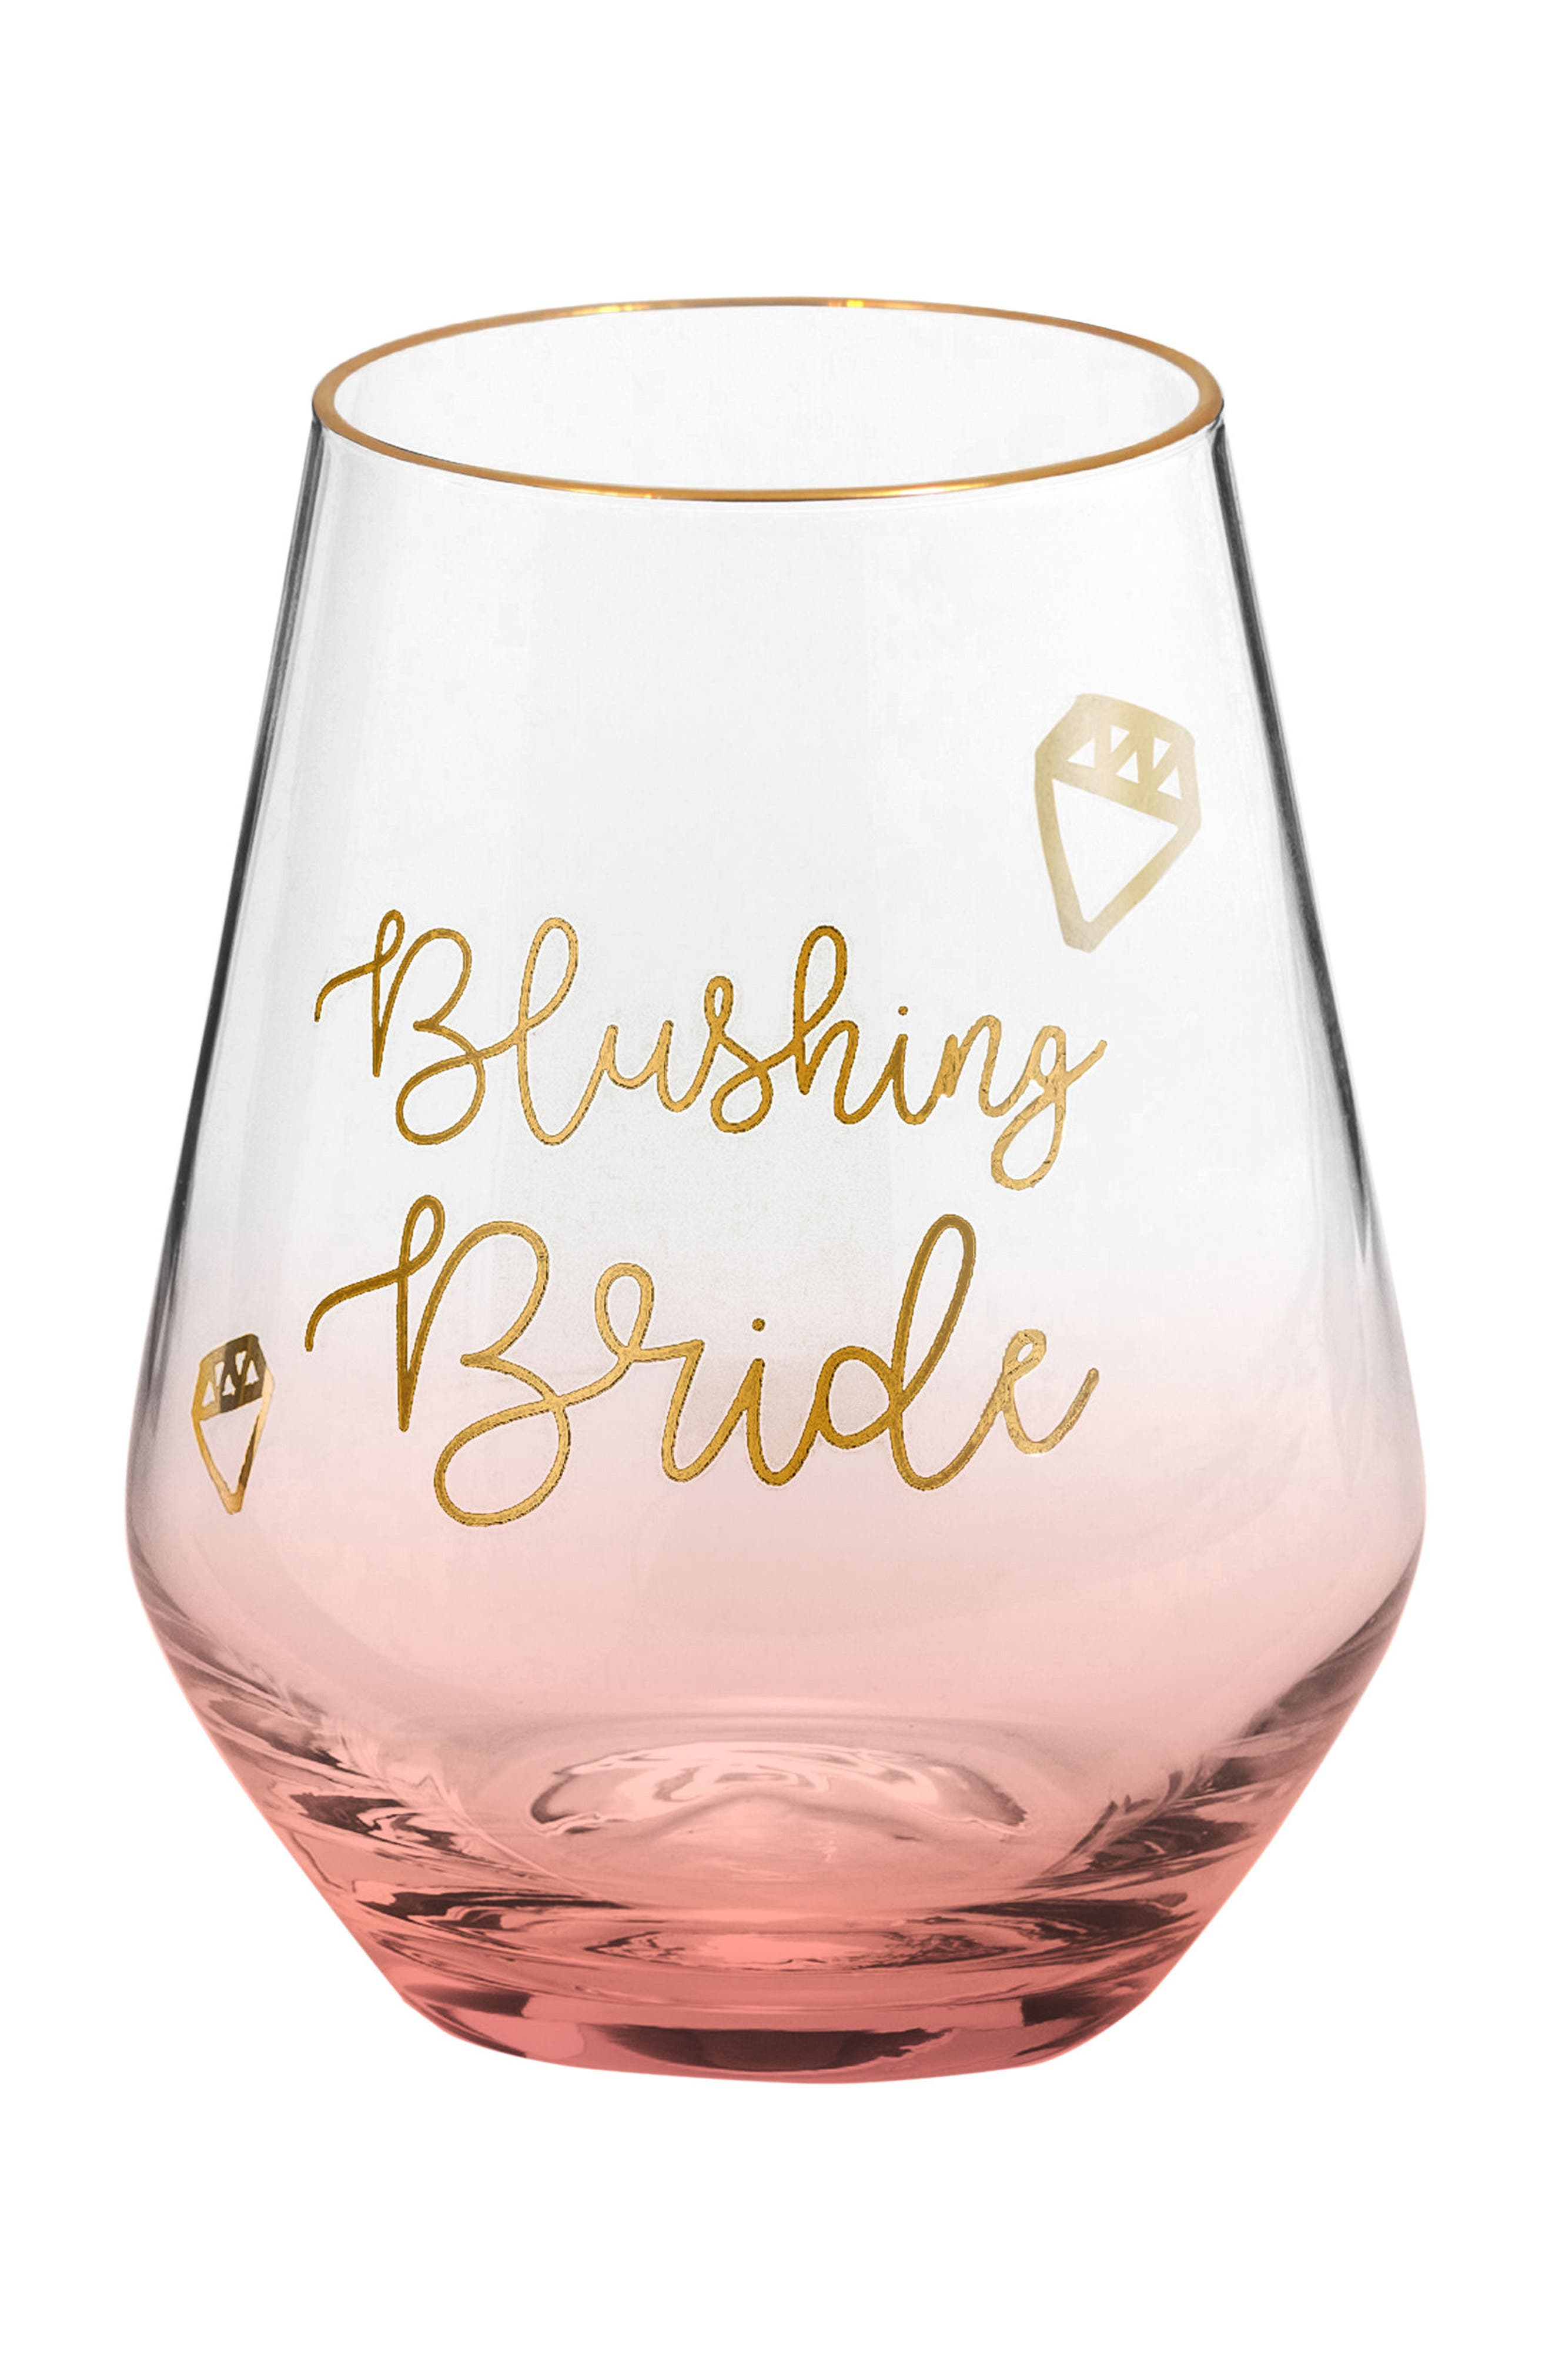 Blushing Bride Stemless Wine Glass,                             Main thumbnail 1, color,                             Pink Gold